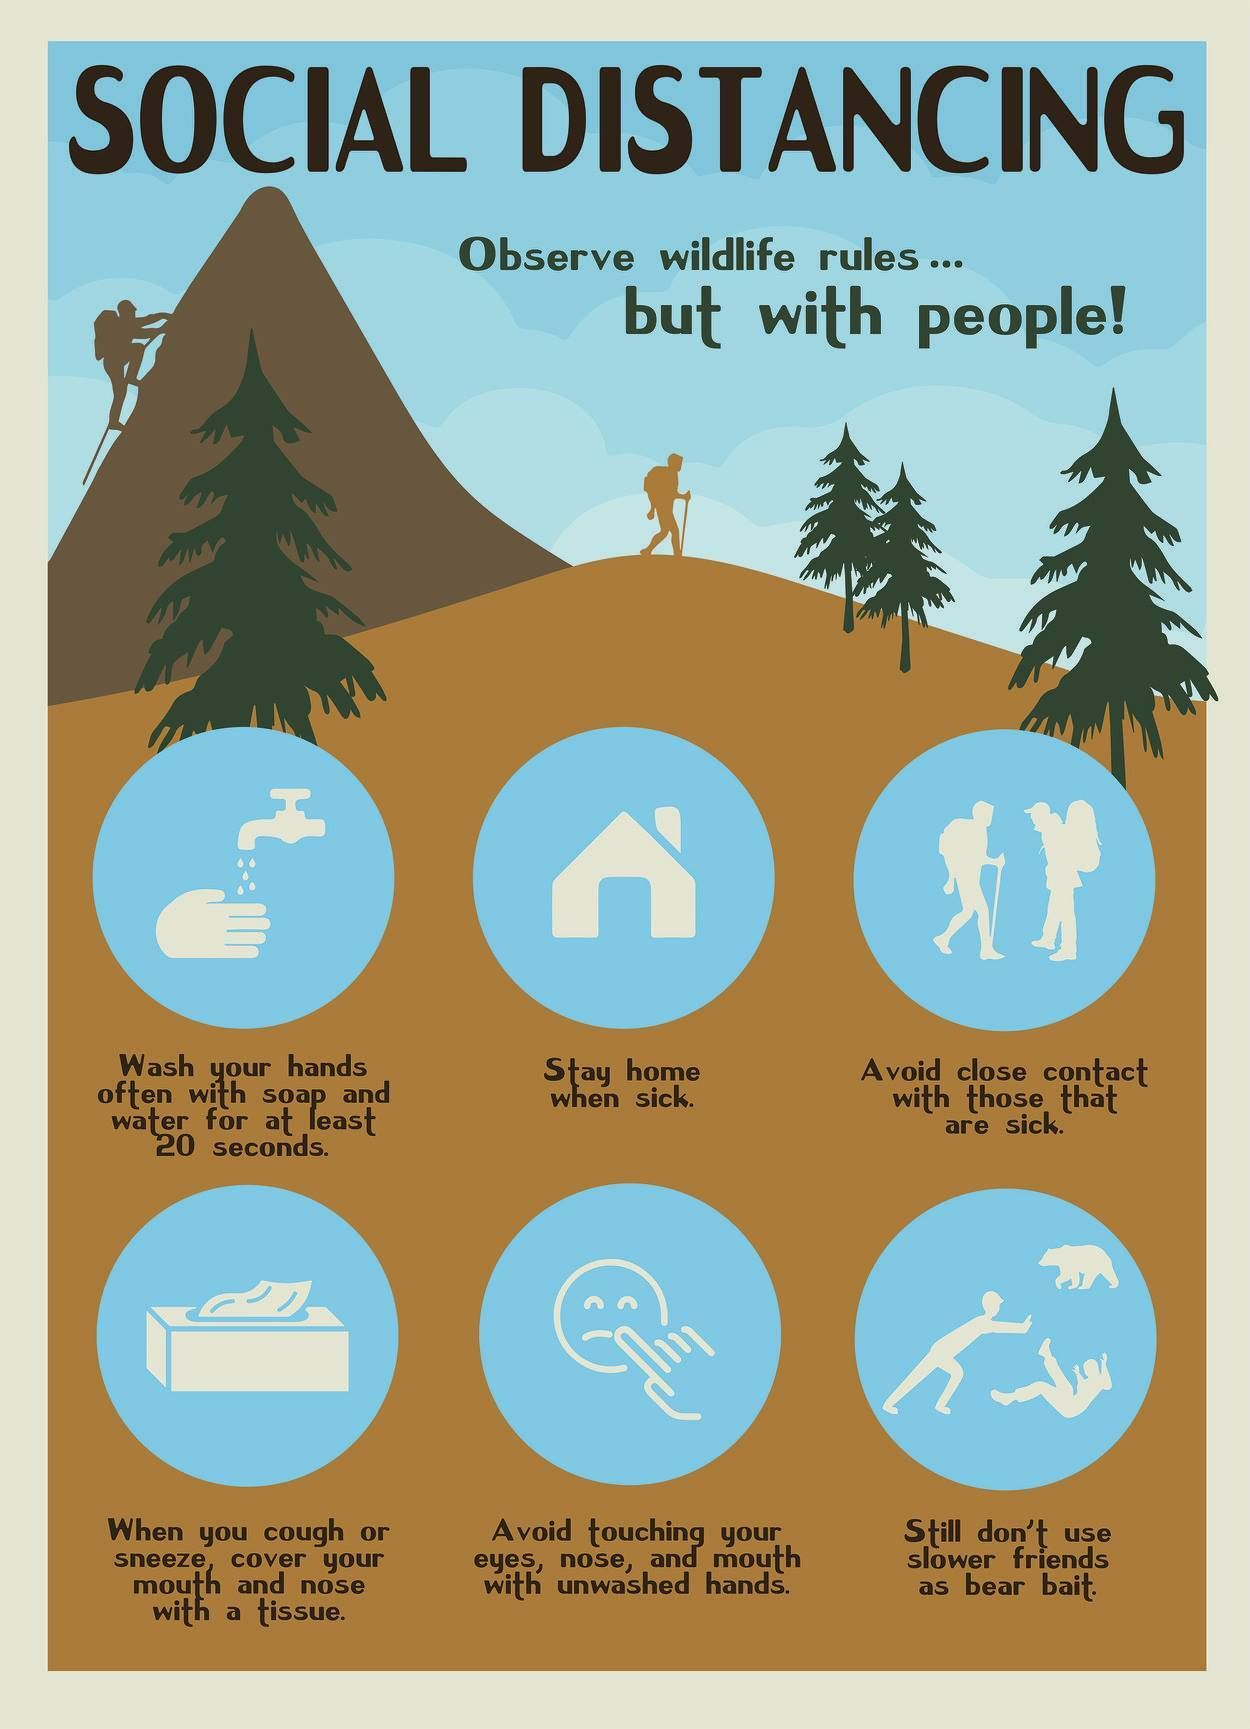 national parks social distancing poster